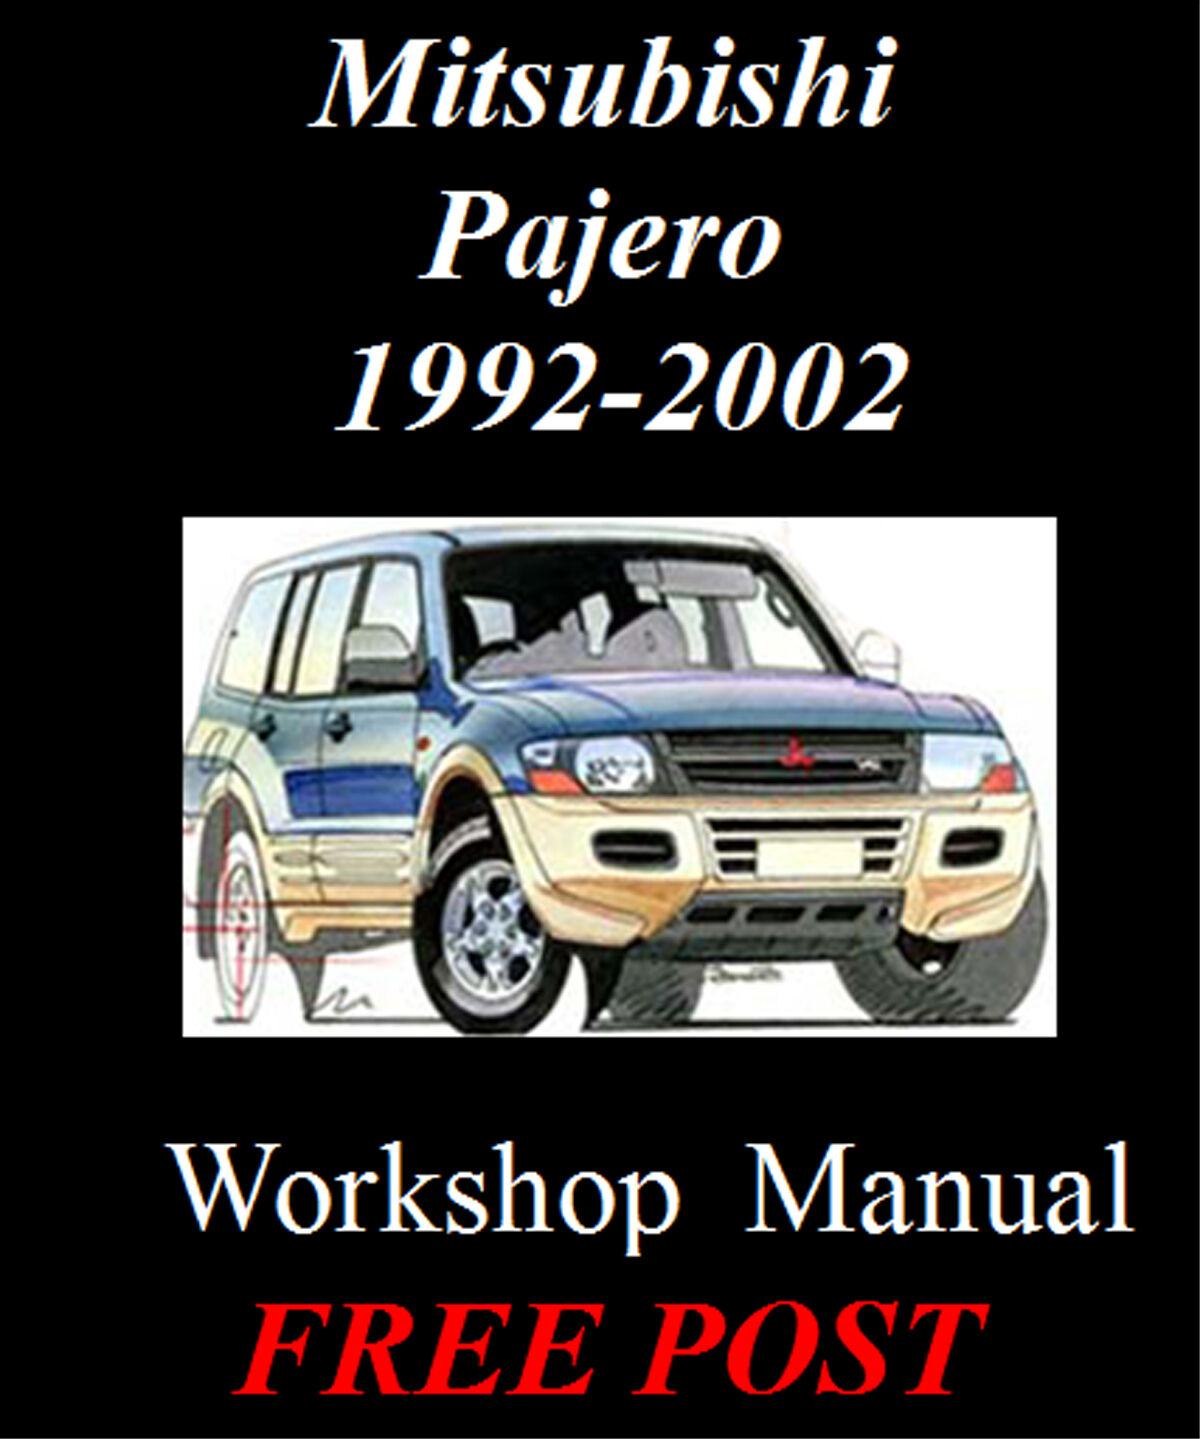 MITSUBISHI PAJERO 1992 - 2002 WORKSHOP SERVICE REPAIR MANUAL ON CD - THE BEST !!